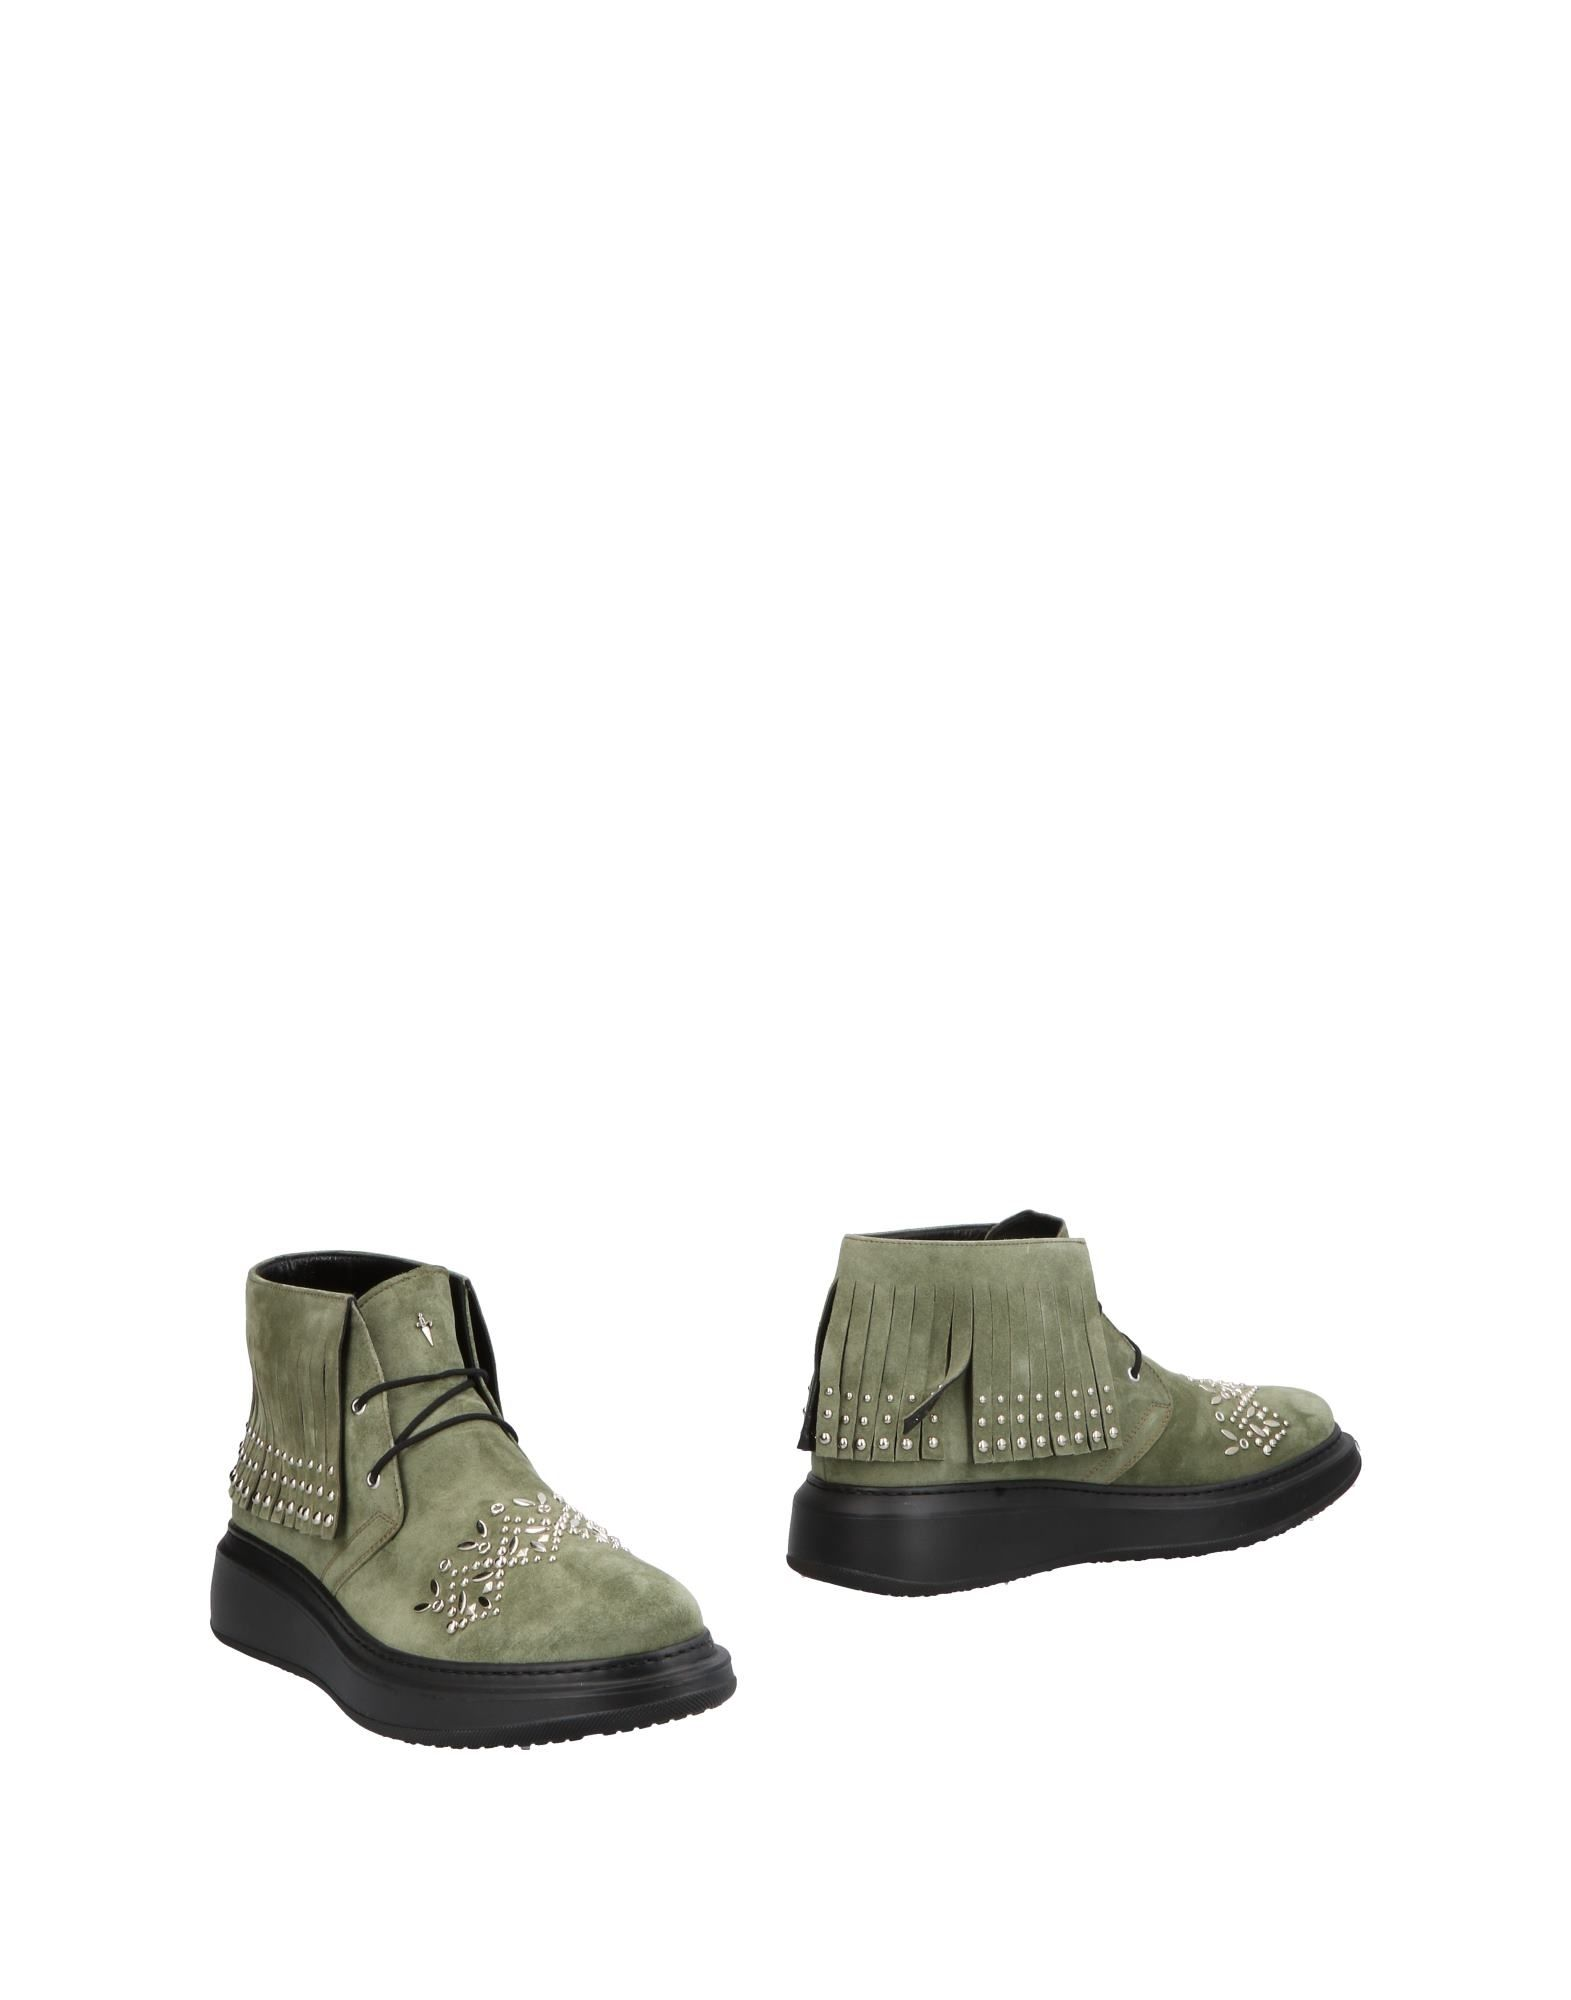 CESARE PACIOTTI Ankle Boots in Military Green